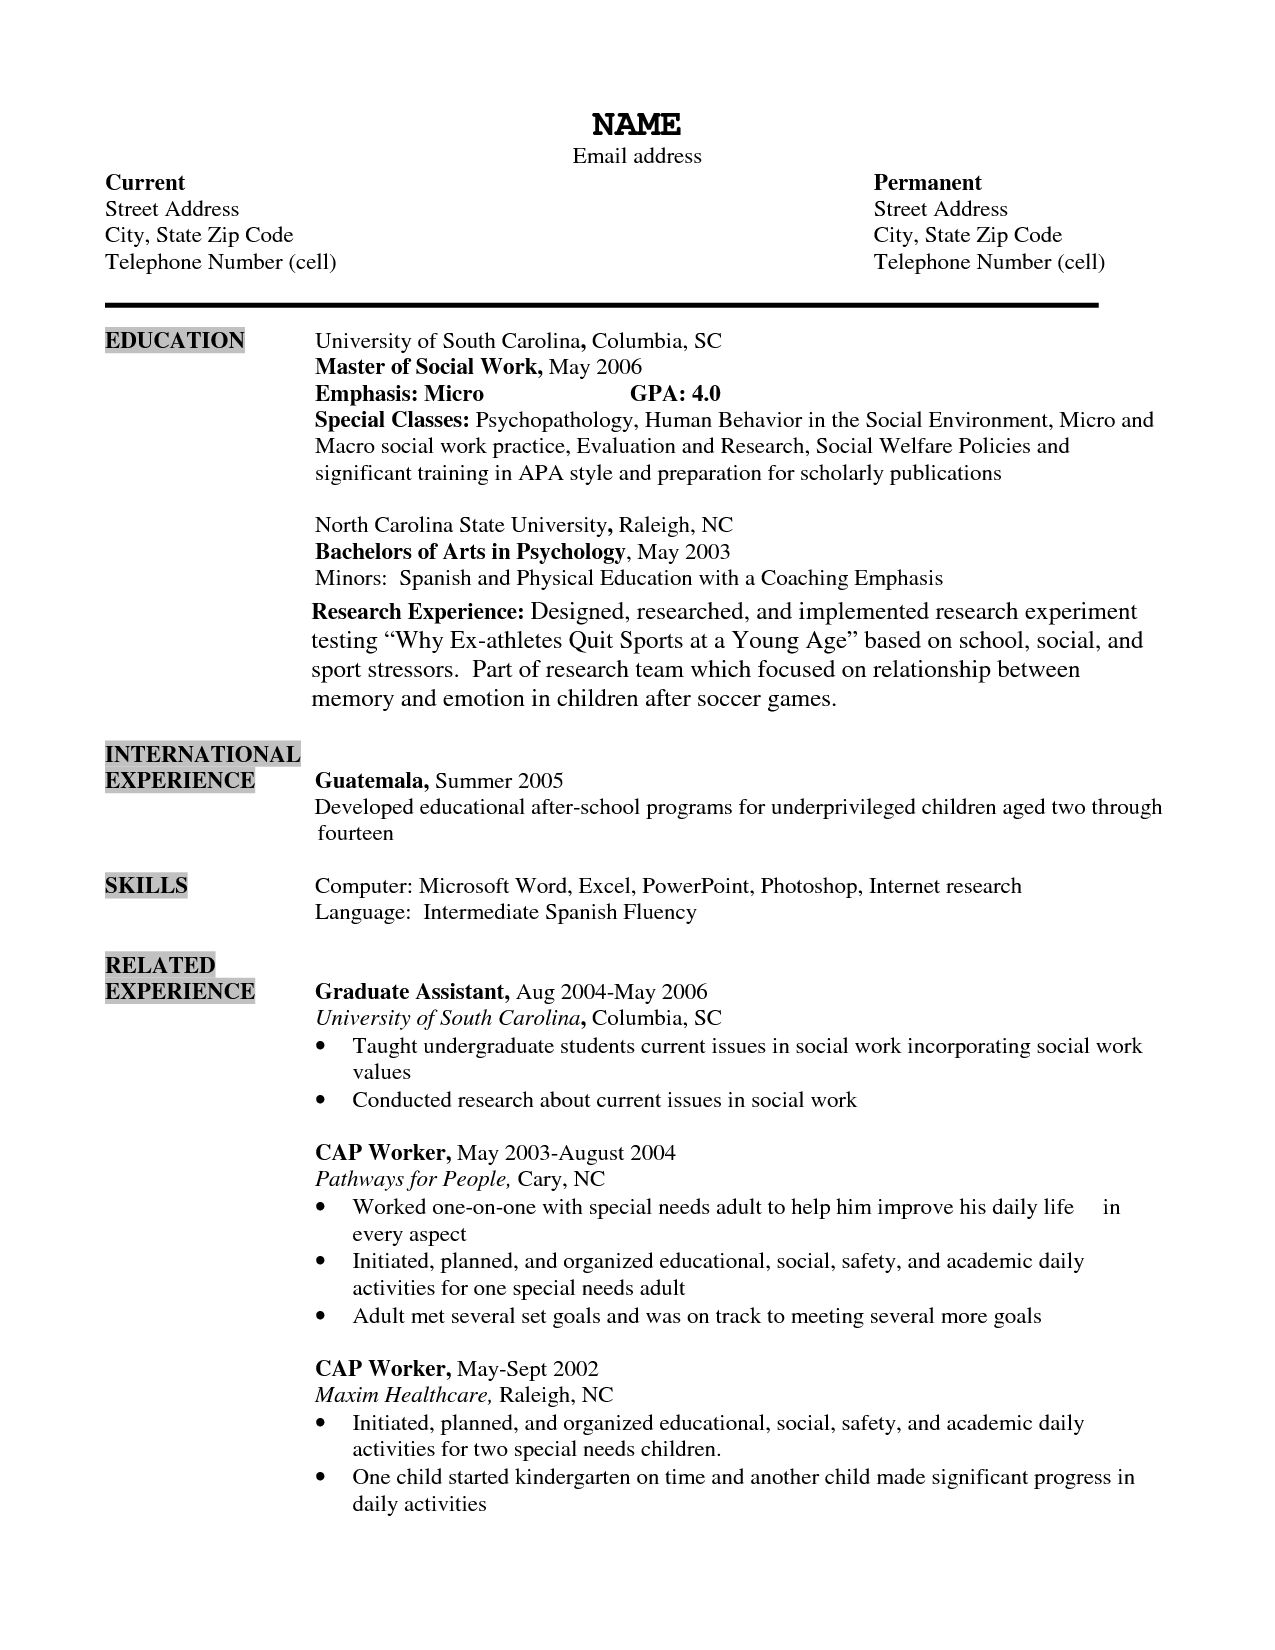 Undergraduate Resume Sample International Psychologist Sample Resume Travel Account Manager .